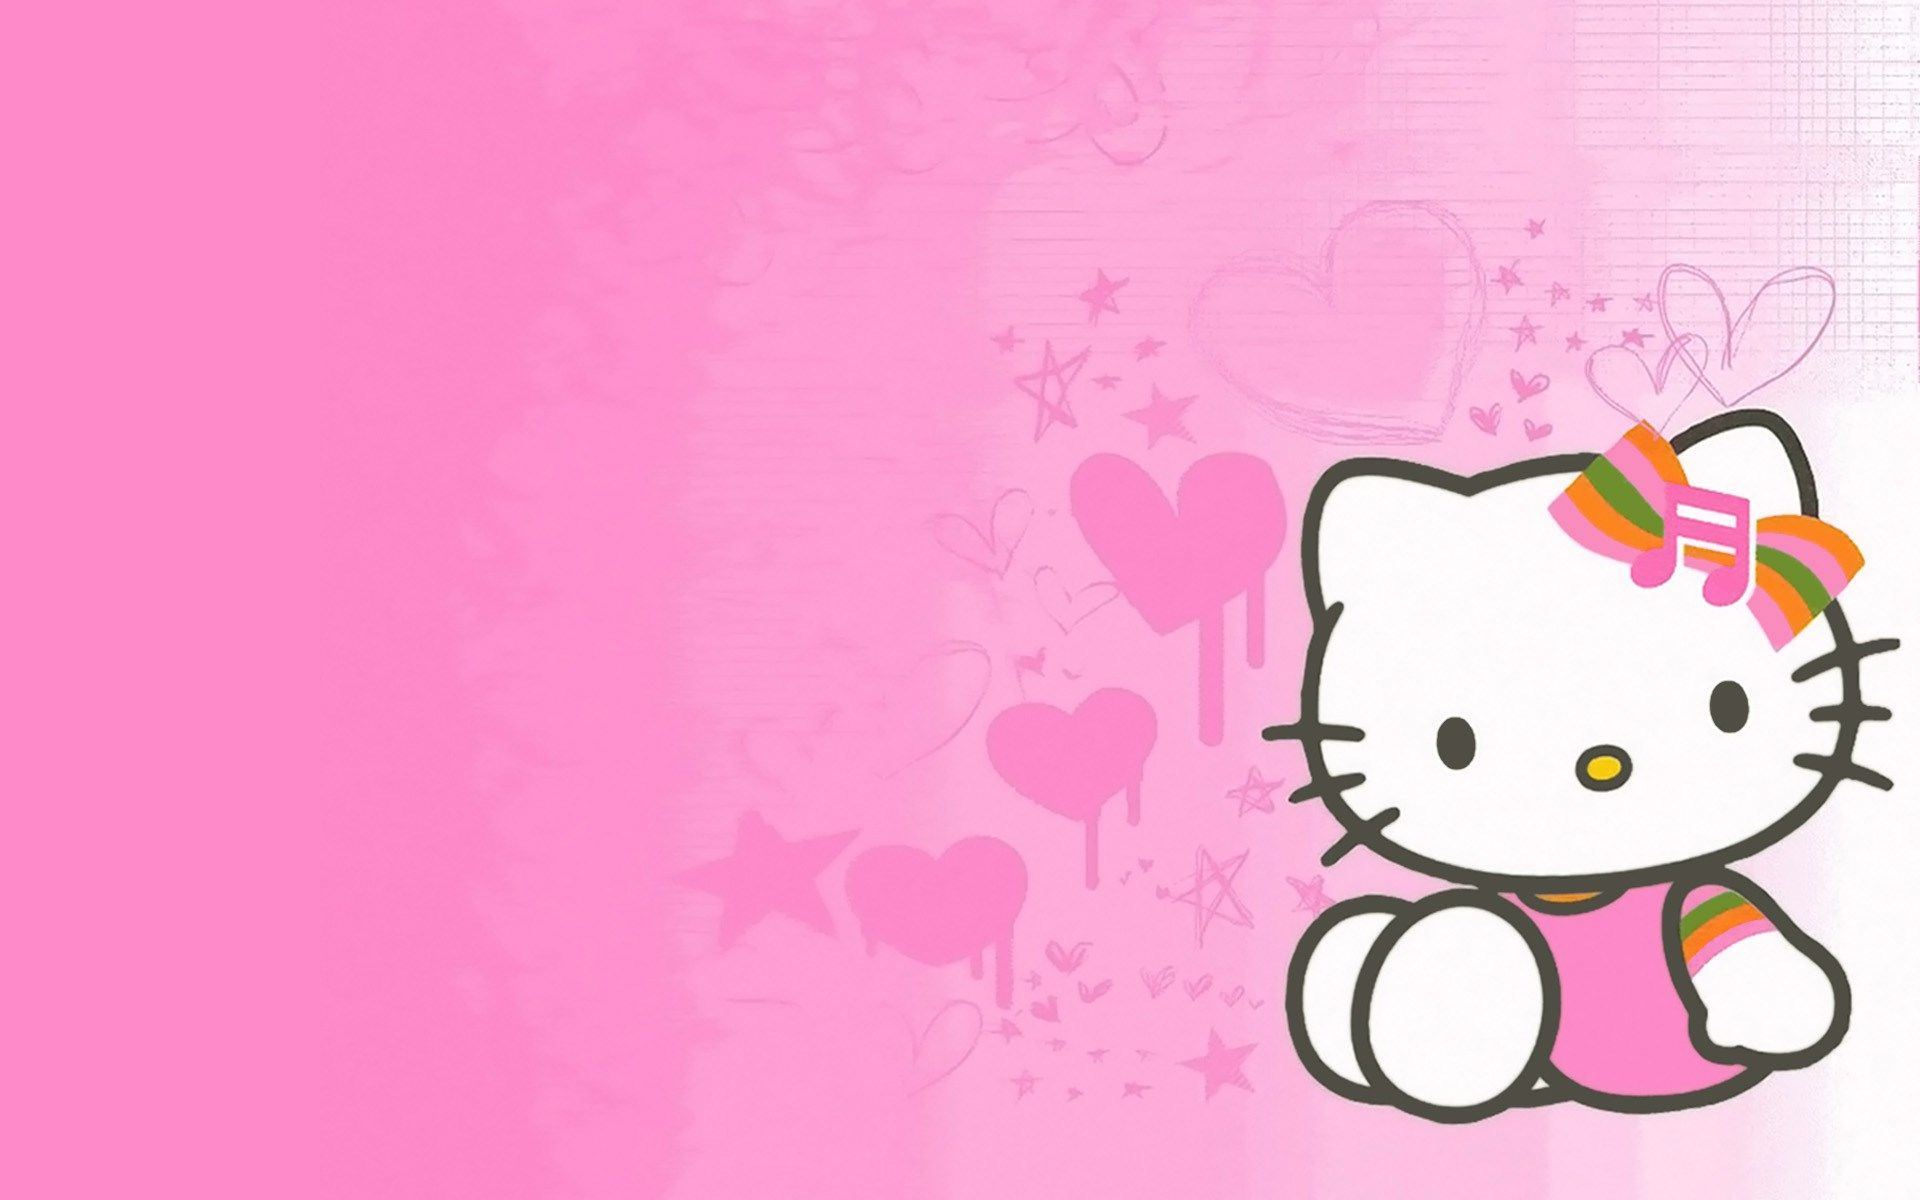 Hello Kitty Desktop Wallpaper Free Hello Kitty Backgrounds Hello Kitty Wallpaper Hd Hello Kitty Wallpaper